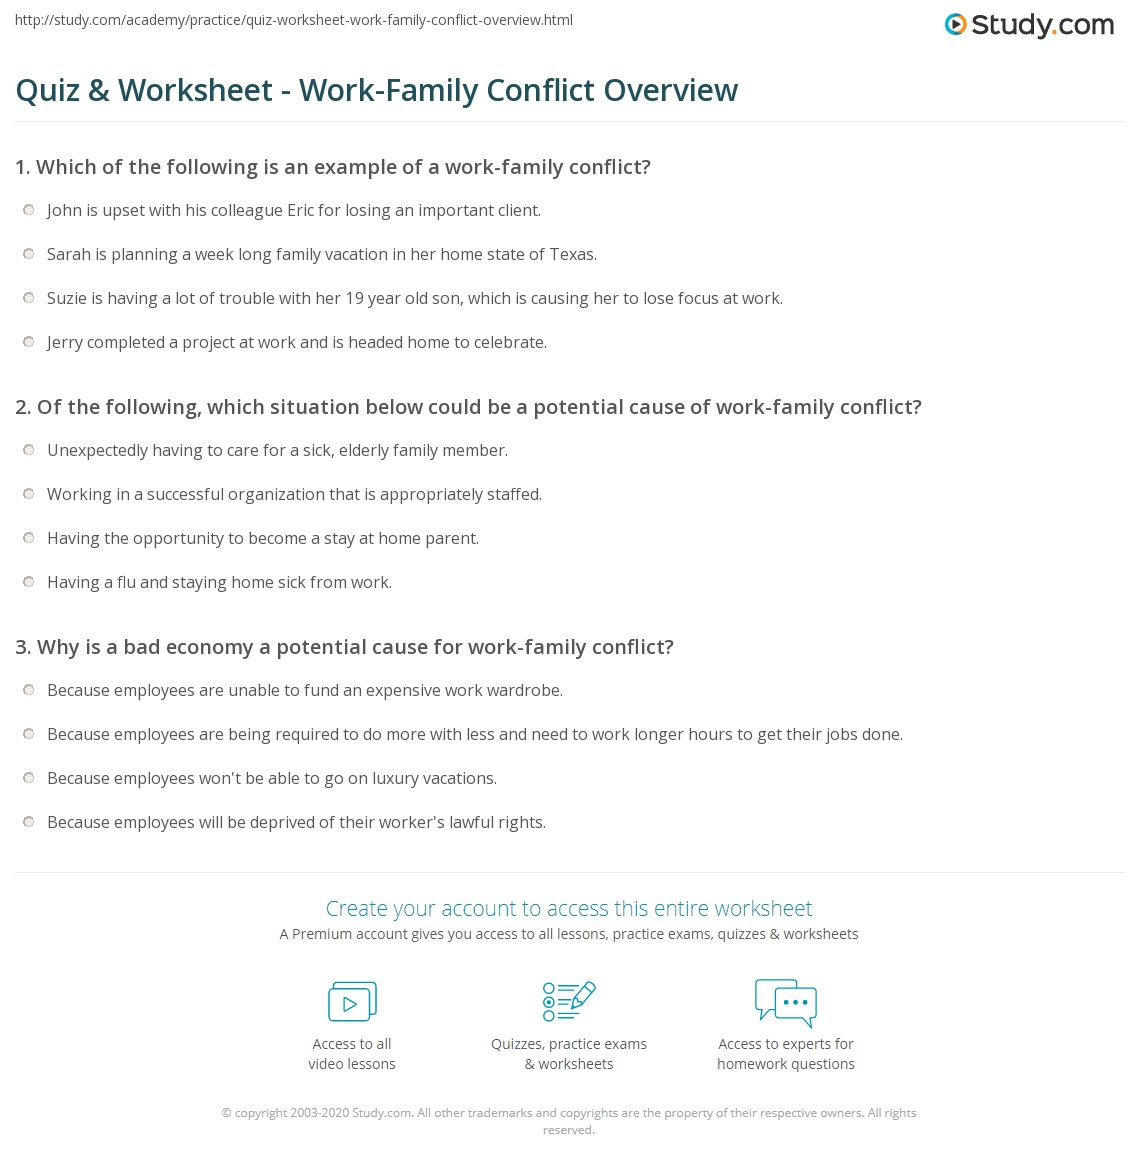 quiz worksheet work family conflict overview study com